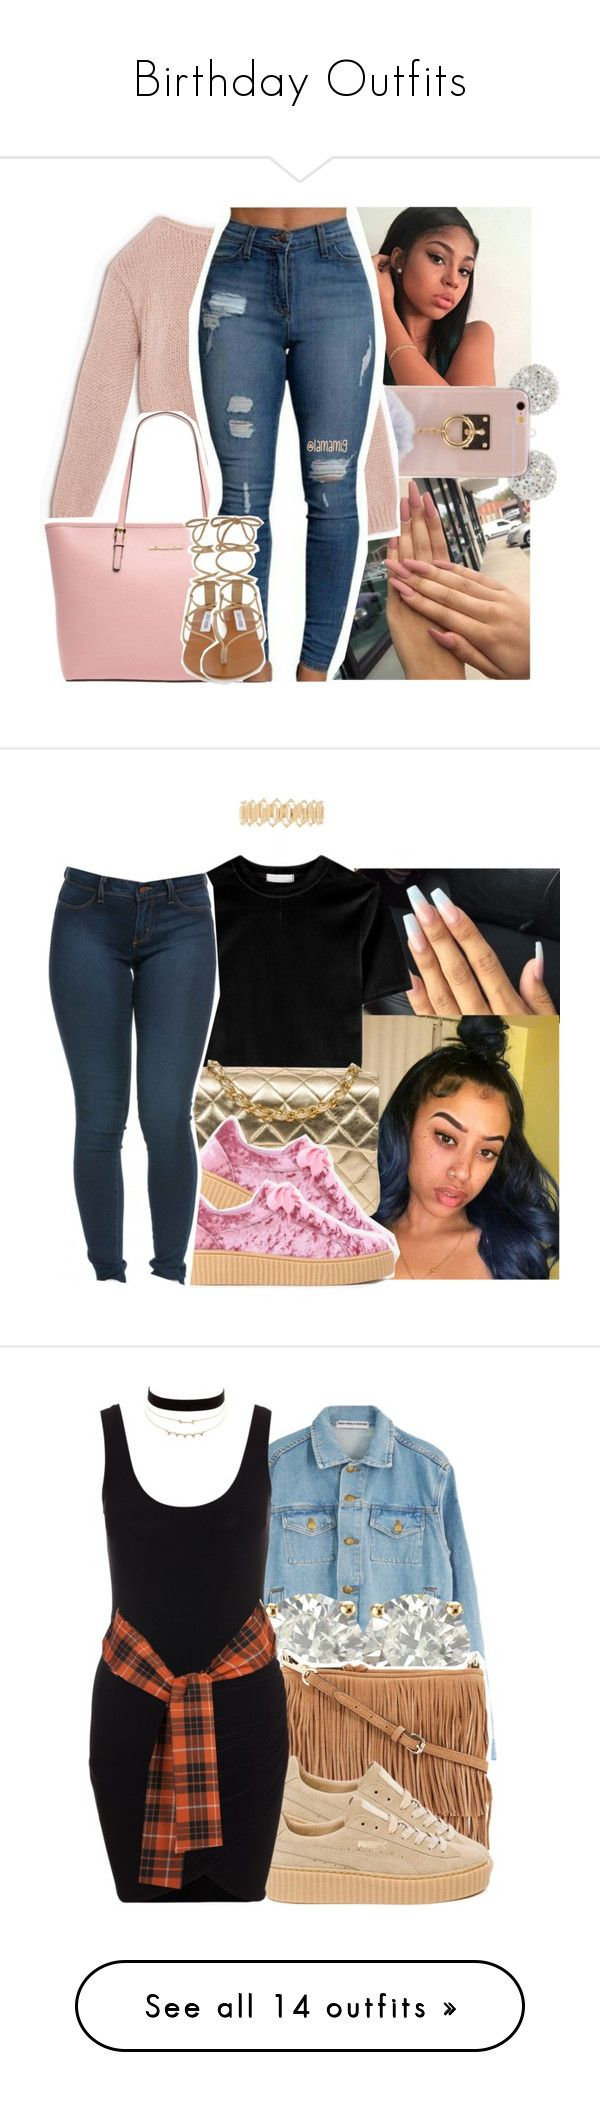 """Birthday Outfits"" by yahcyriatinnon ❤ liked on Polyvore featuring Max&Co., MICHAEL Michael Kors, Steve Madden, Chanel, Haati Chai, Trendy, 2016, Auriya, Rebecca Minkoff and Puma"